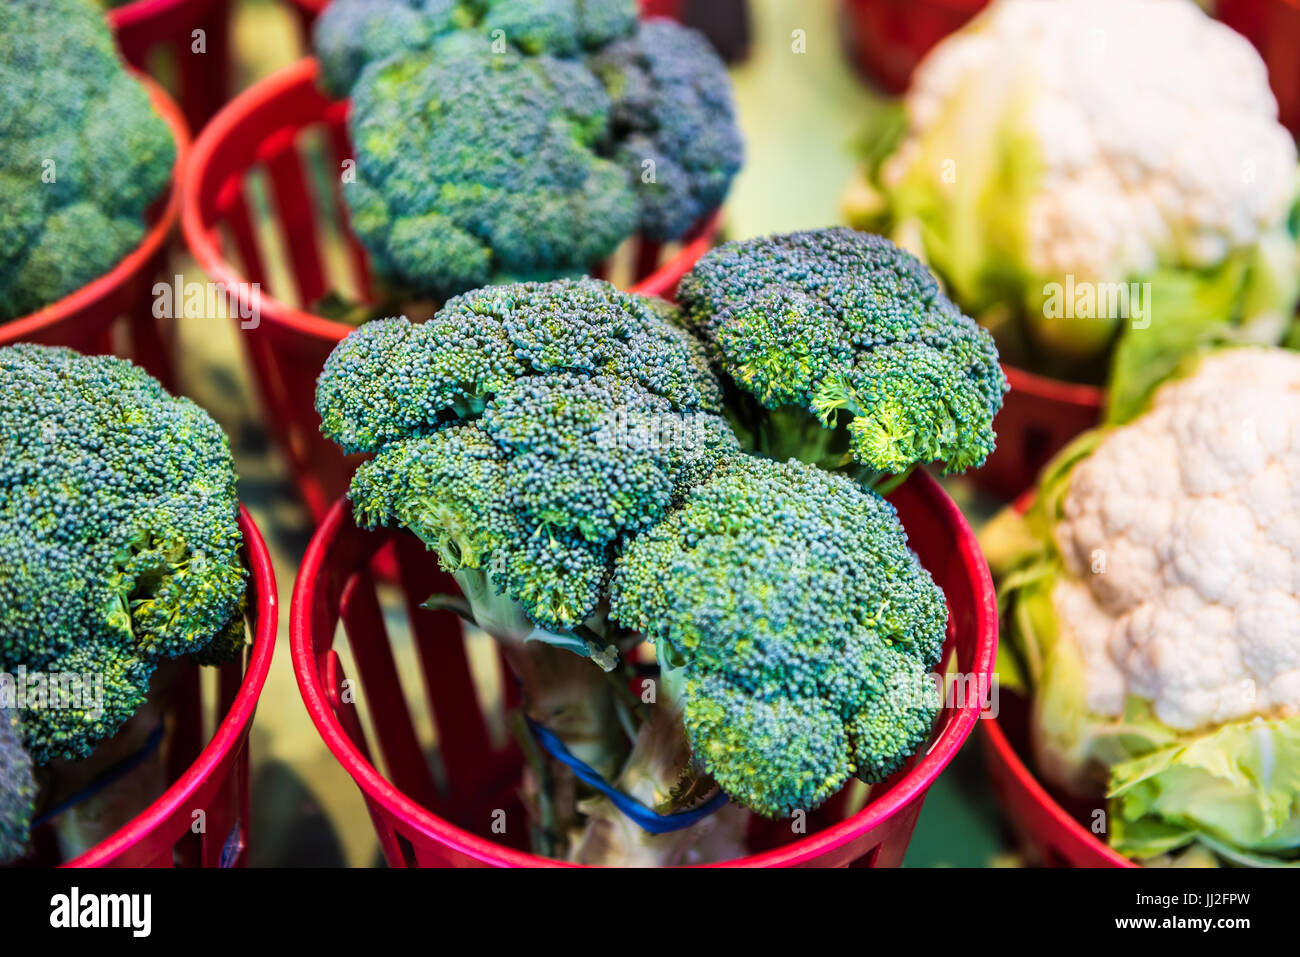 Closeup of broccoli and cauliflower bunches in baskets on display in farmers market - Stock Image